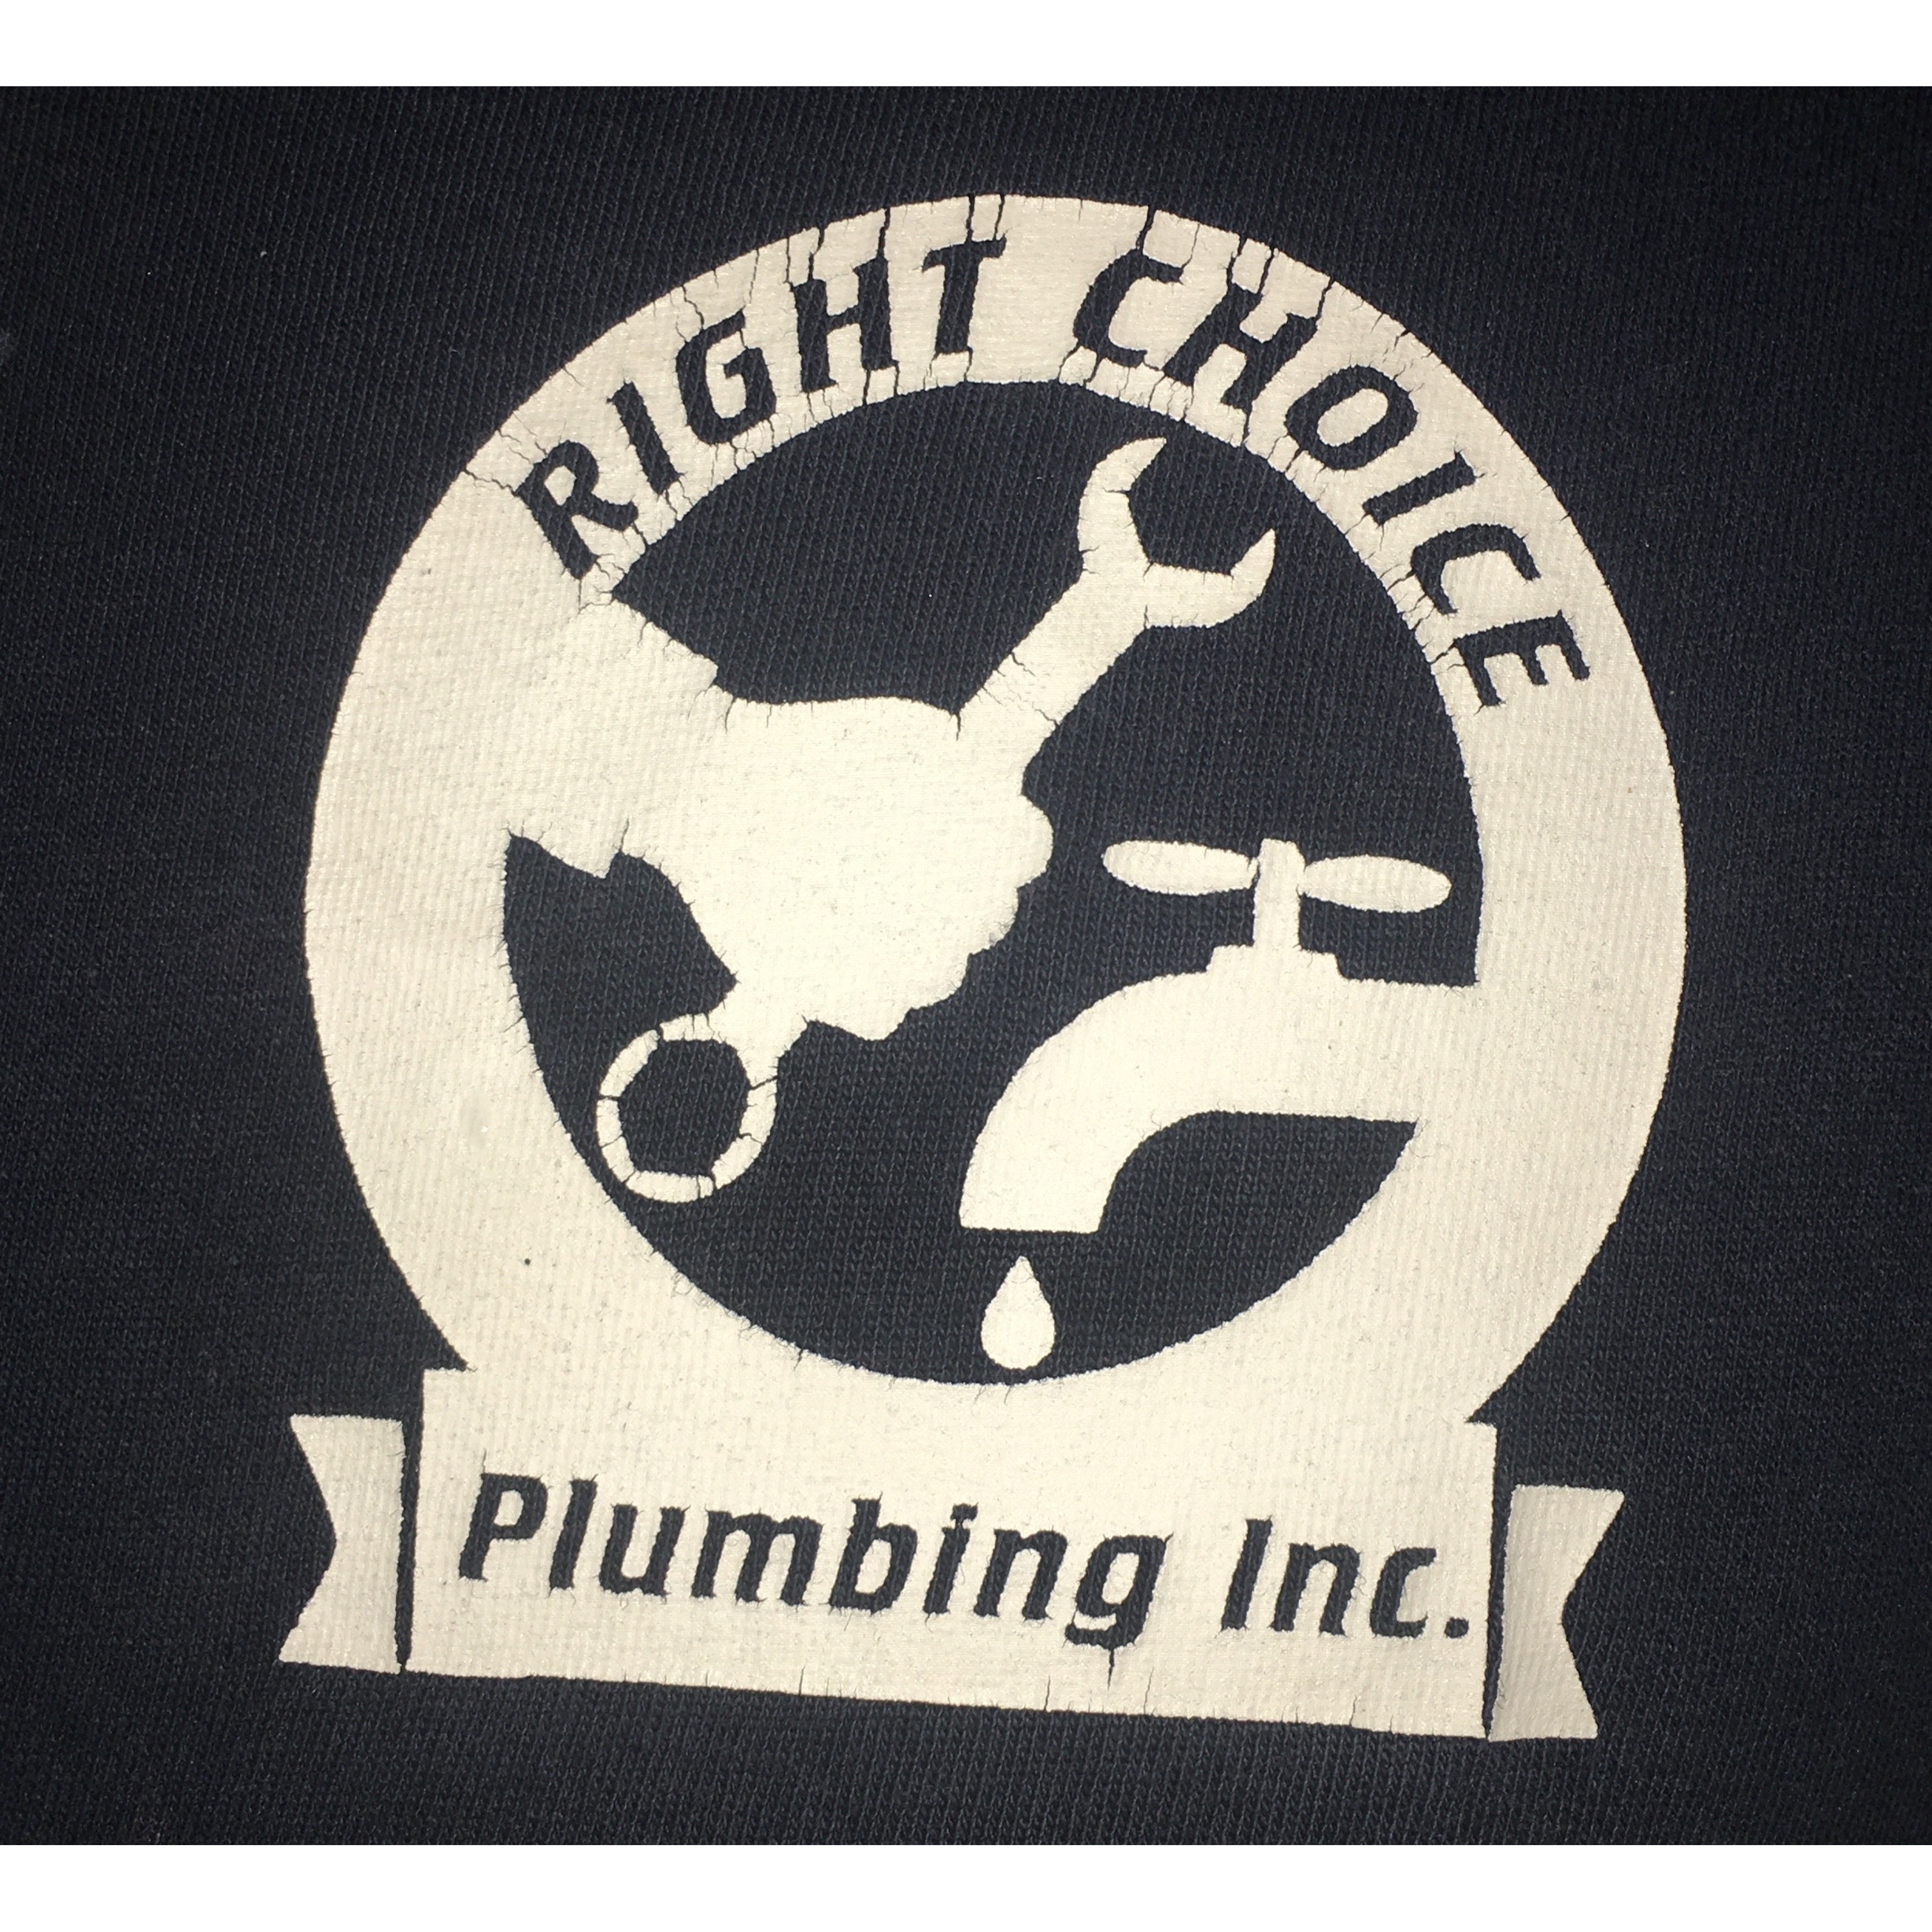 Right Choice Plumbing - San Marcos, CA 92069 - (619)357-8547 | ShowMeLocal.com